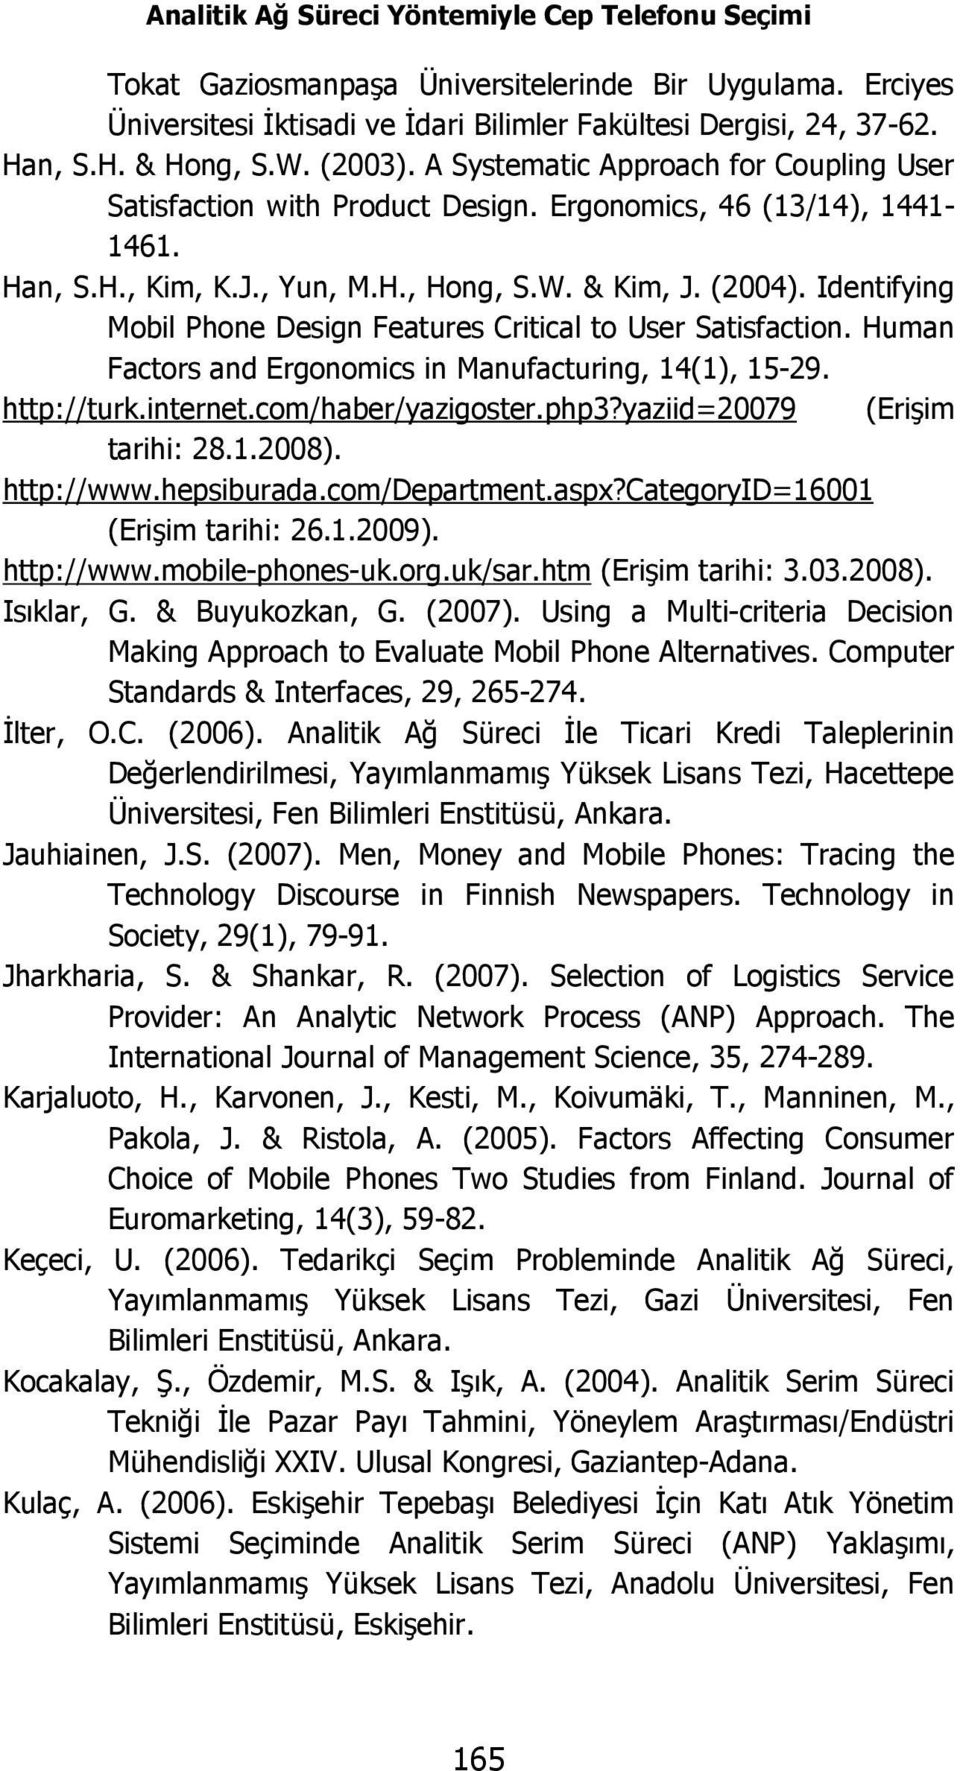 Identifying Mobil Phone Design Features Critical to User Satisfaction. Human Factors and Ergonomics in Manufacturing, 14(1), 15-29. http://turk.internet.com/haber/yazigoster.php3?